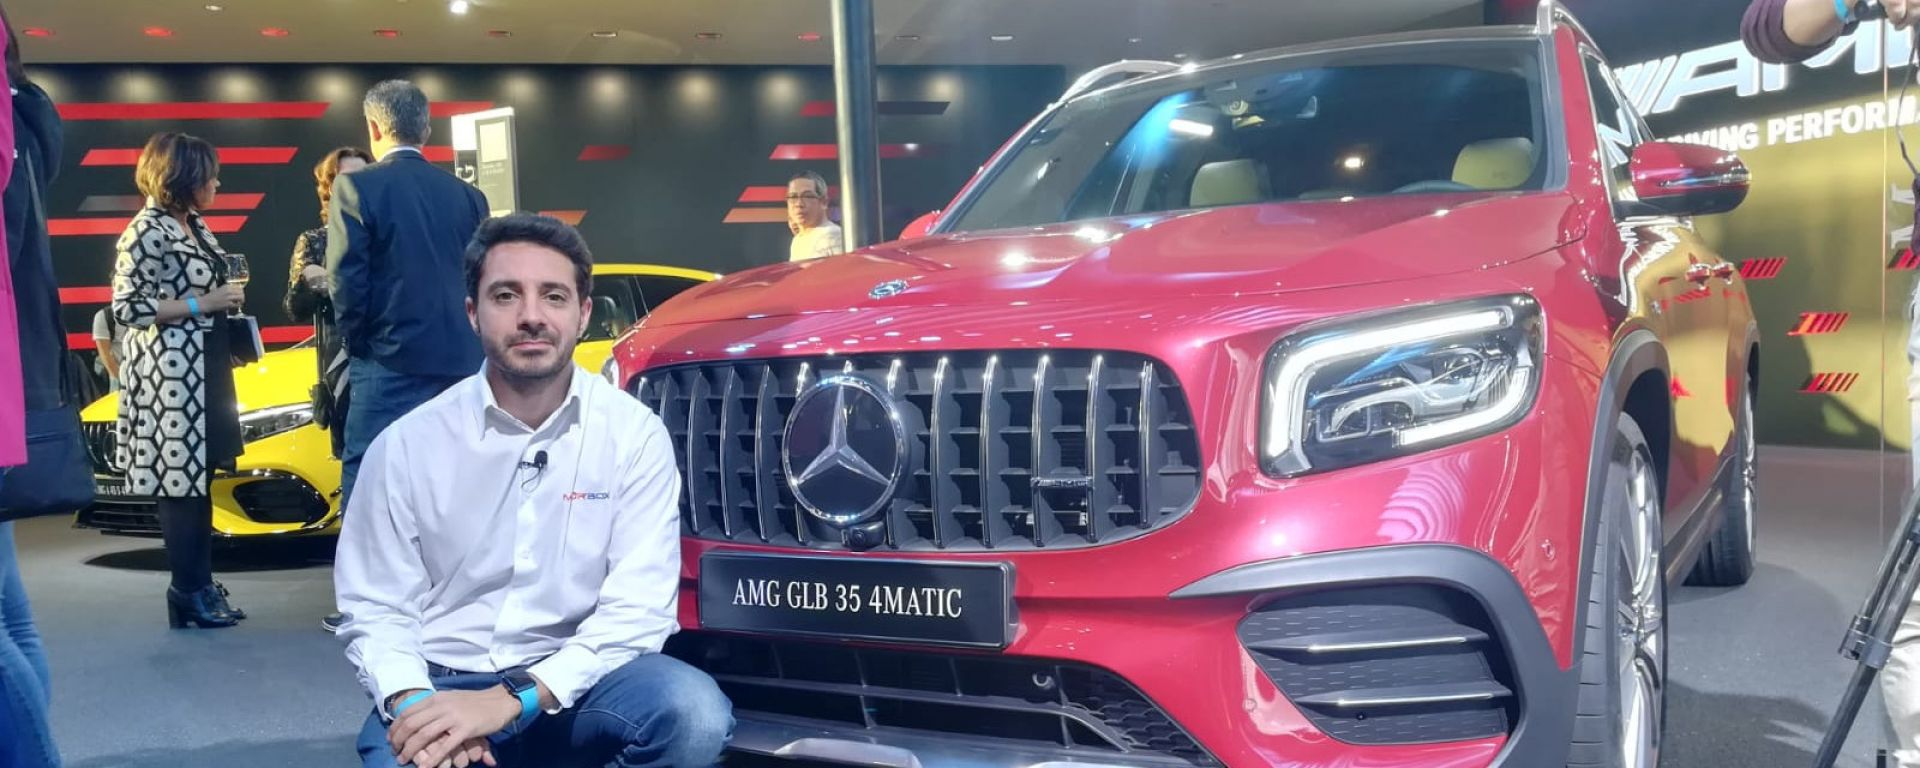 Nuova Mercedes GLB in video dal Salone di Francoforte 2019